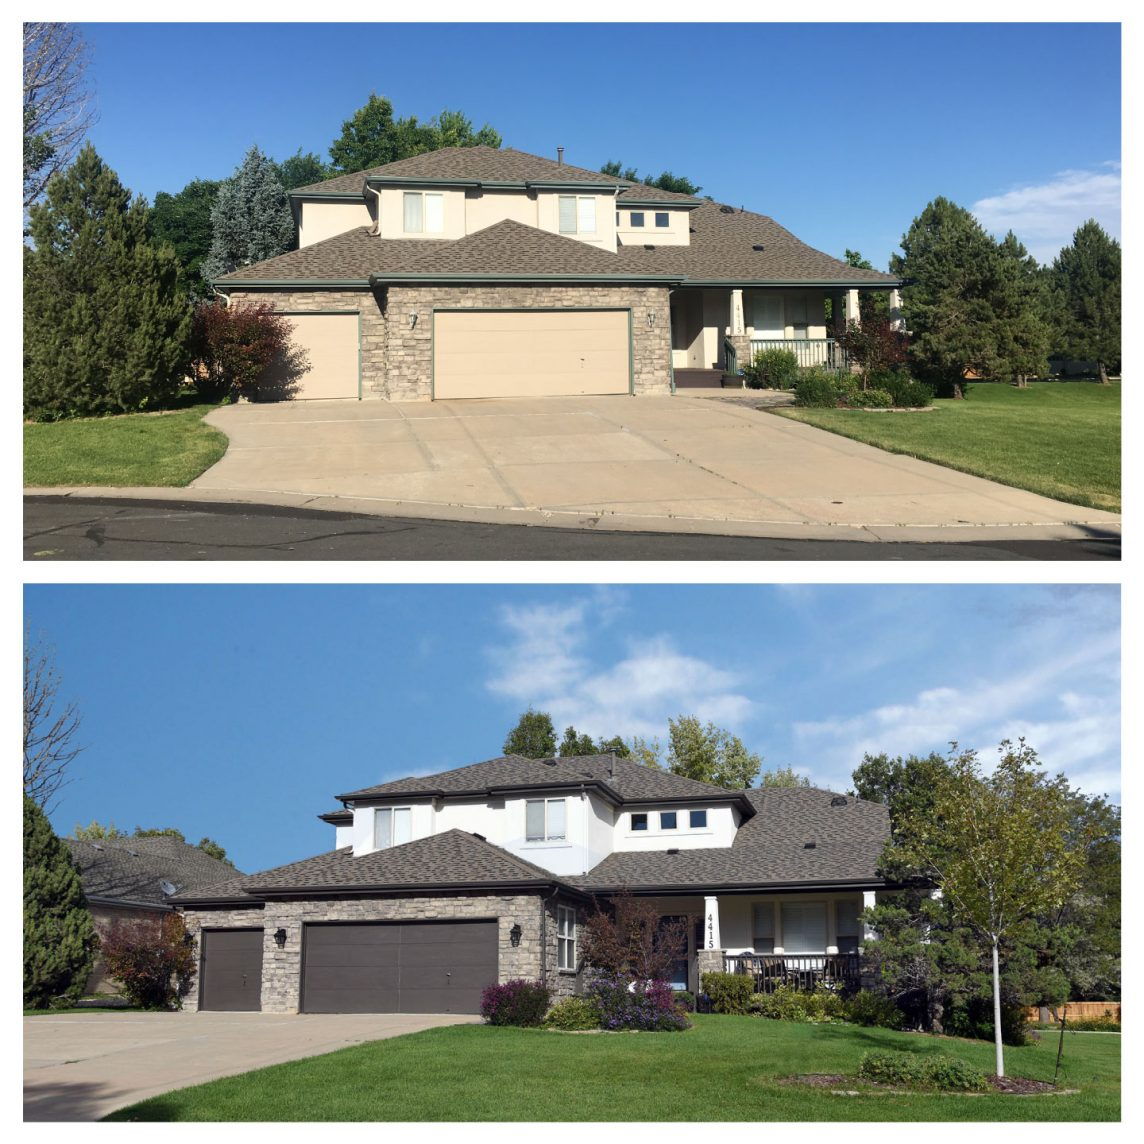 House Painting Before and After Paint Denver House Painting Projects